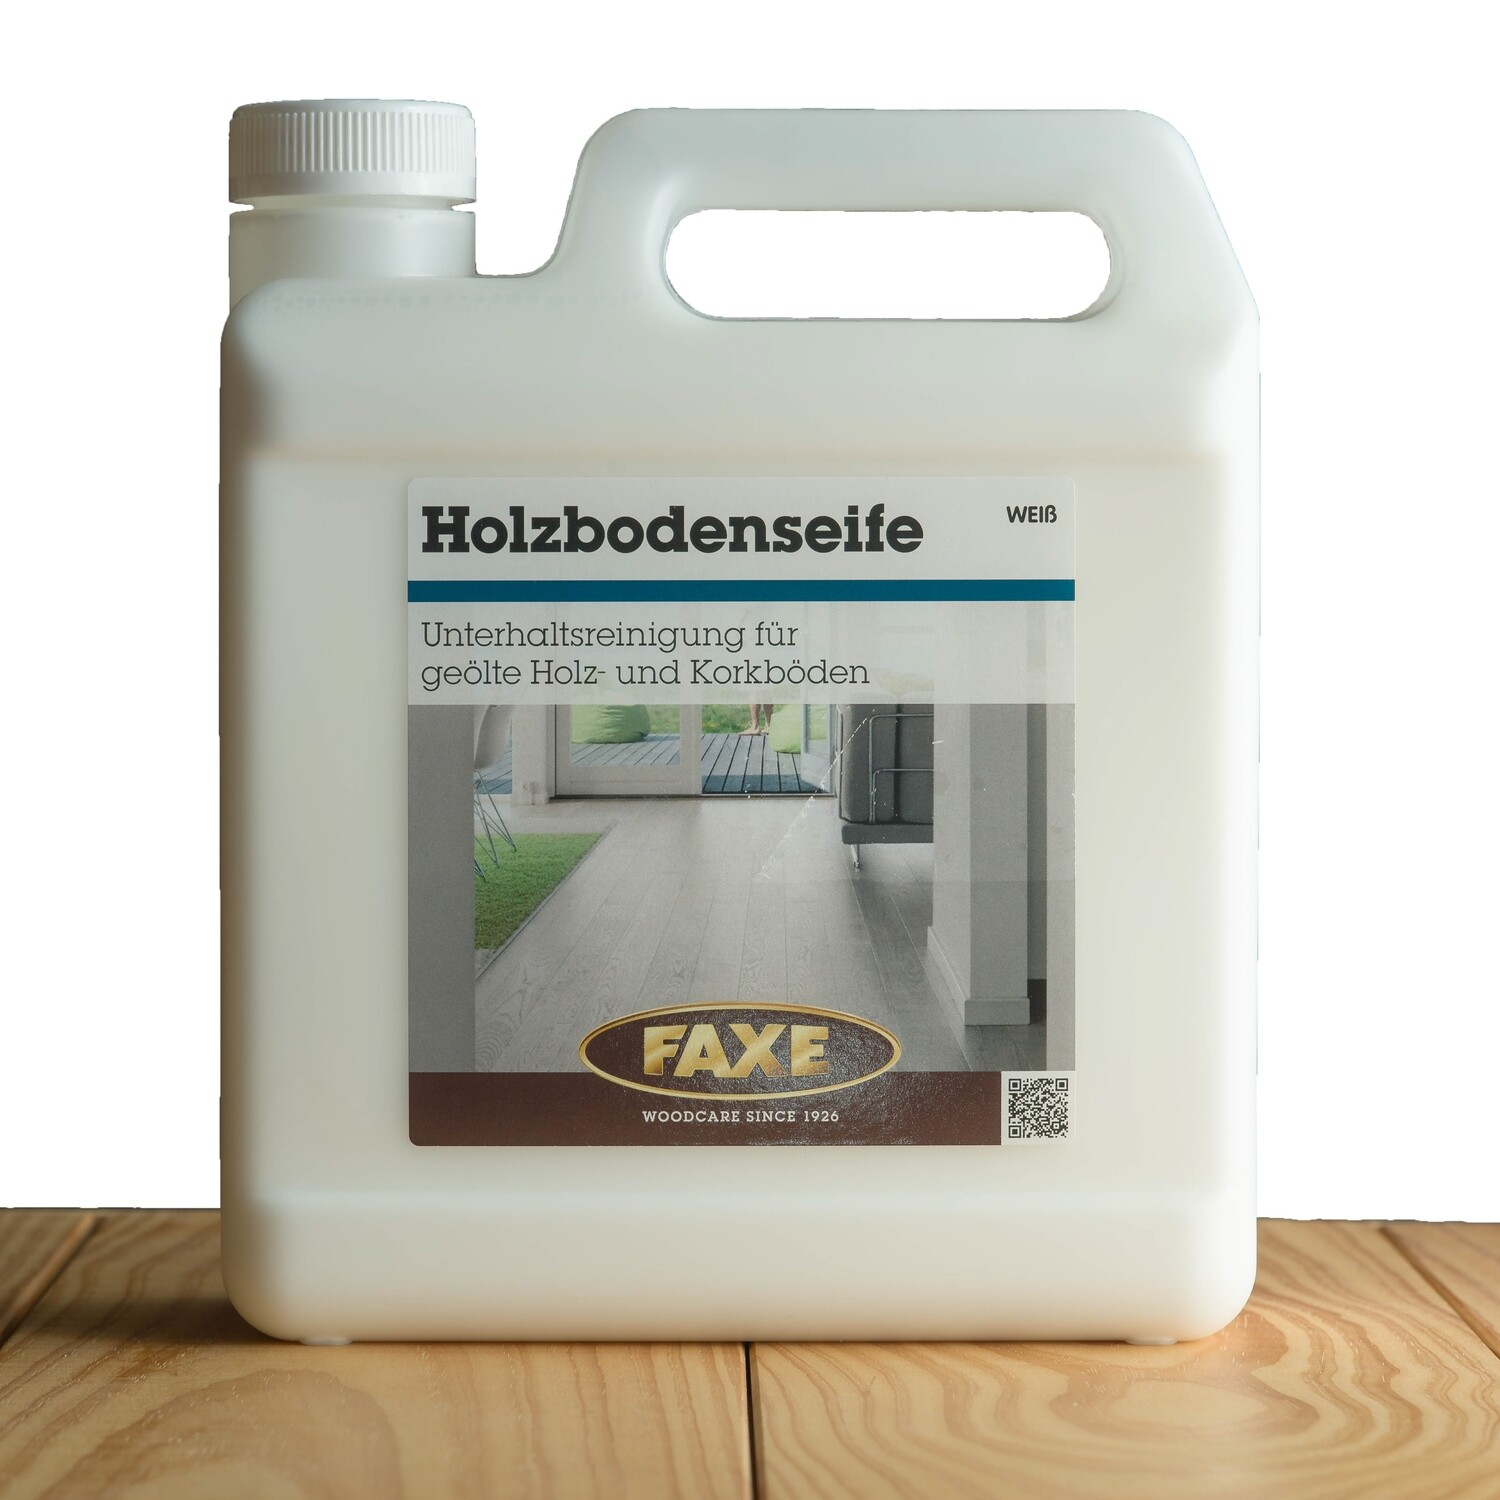 Faxe Holzbodenseife weiß 1,0 l